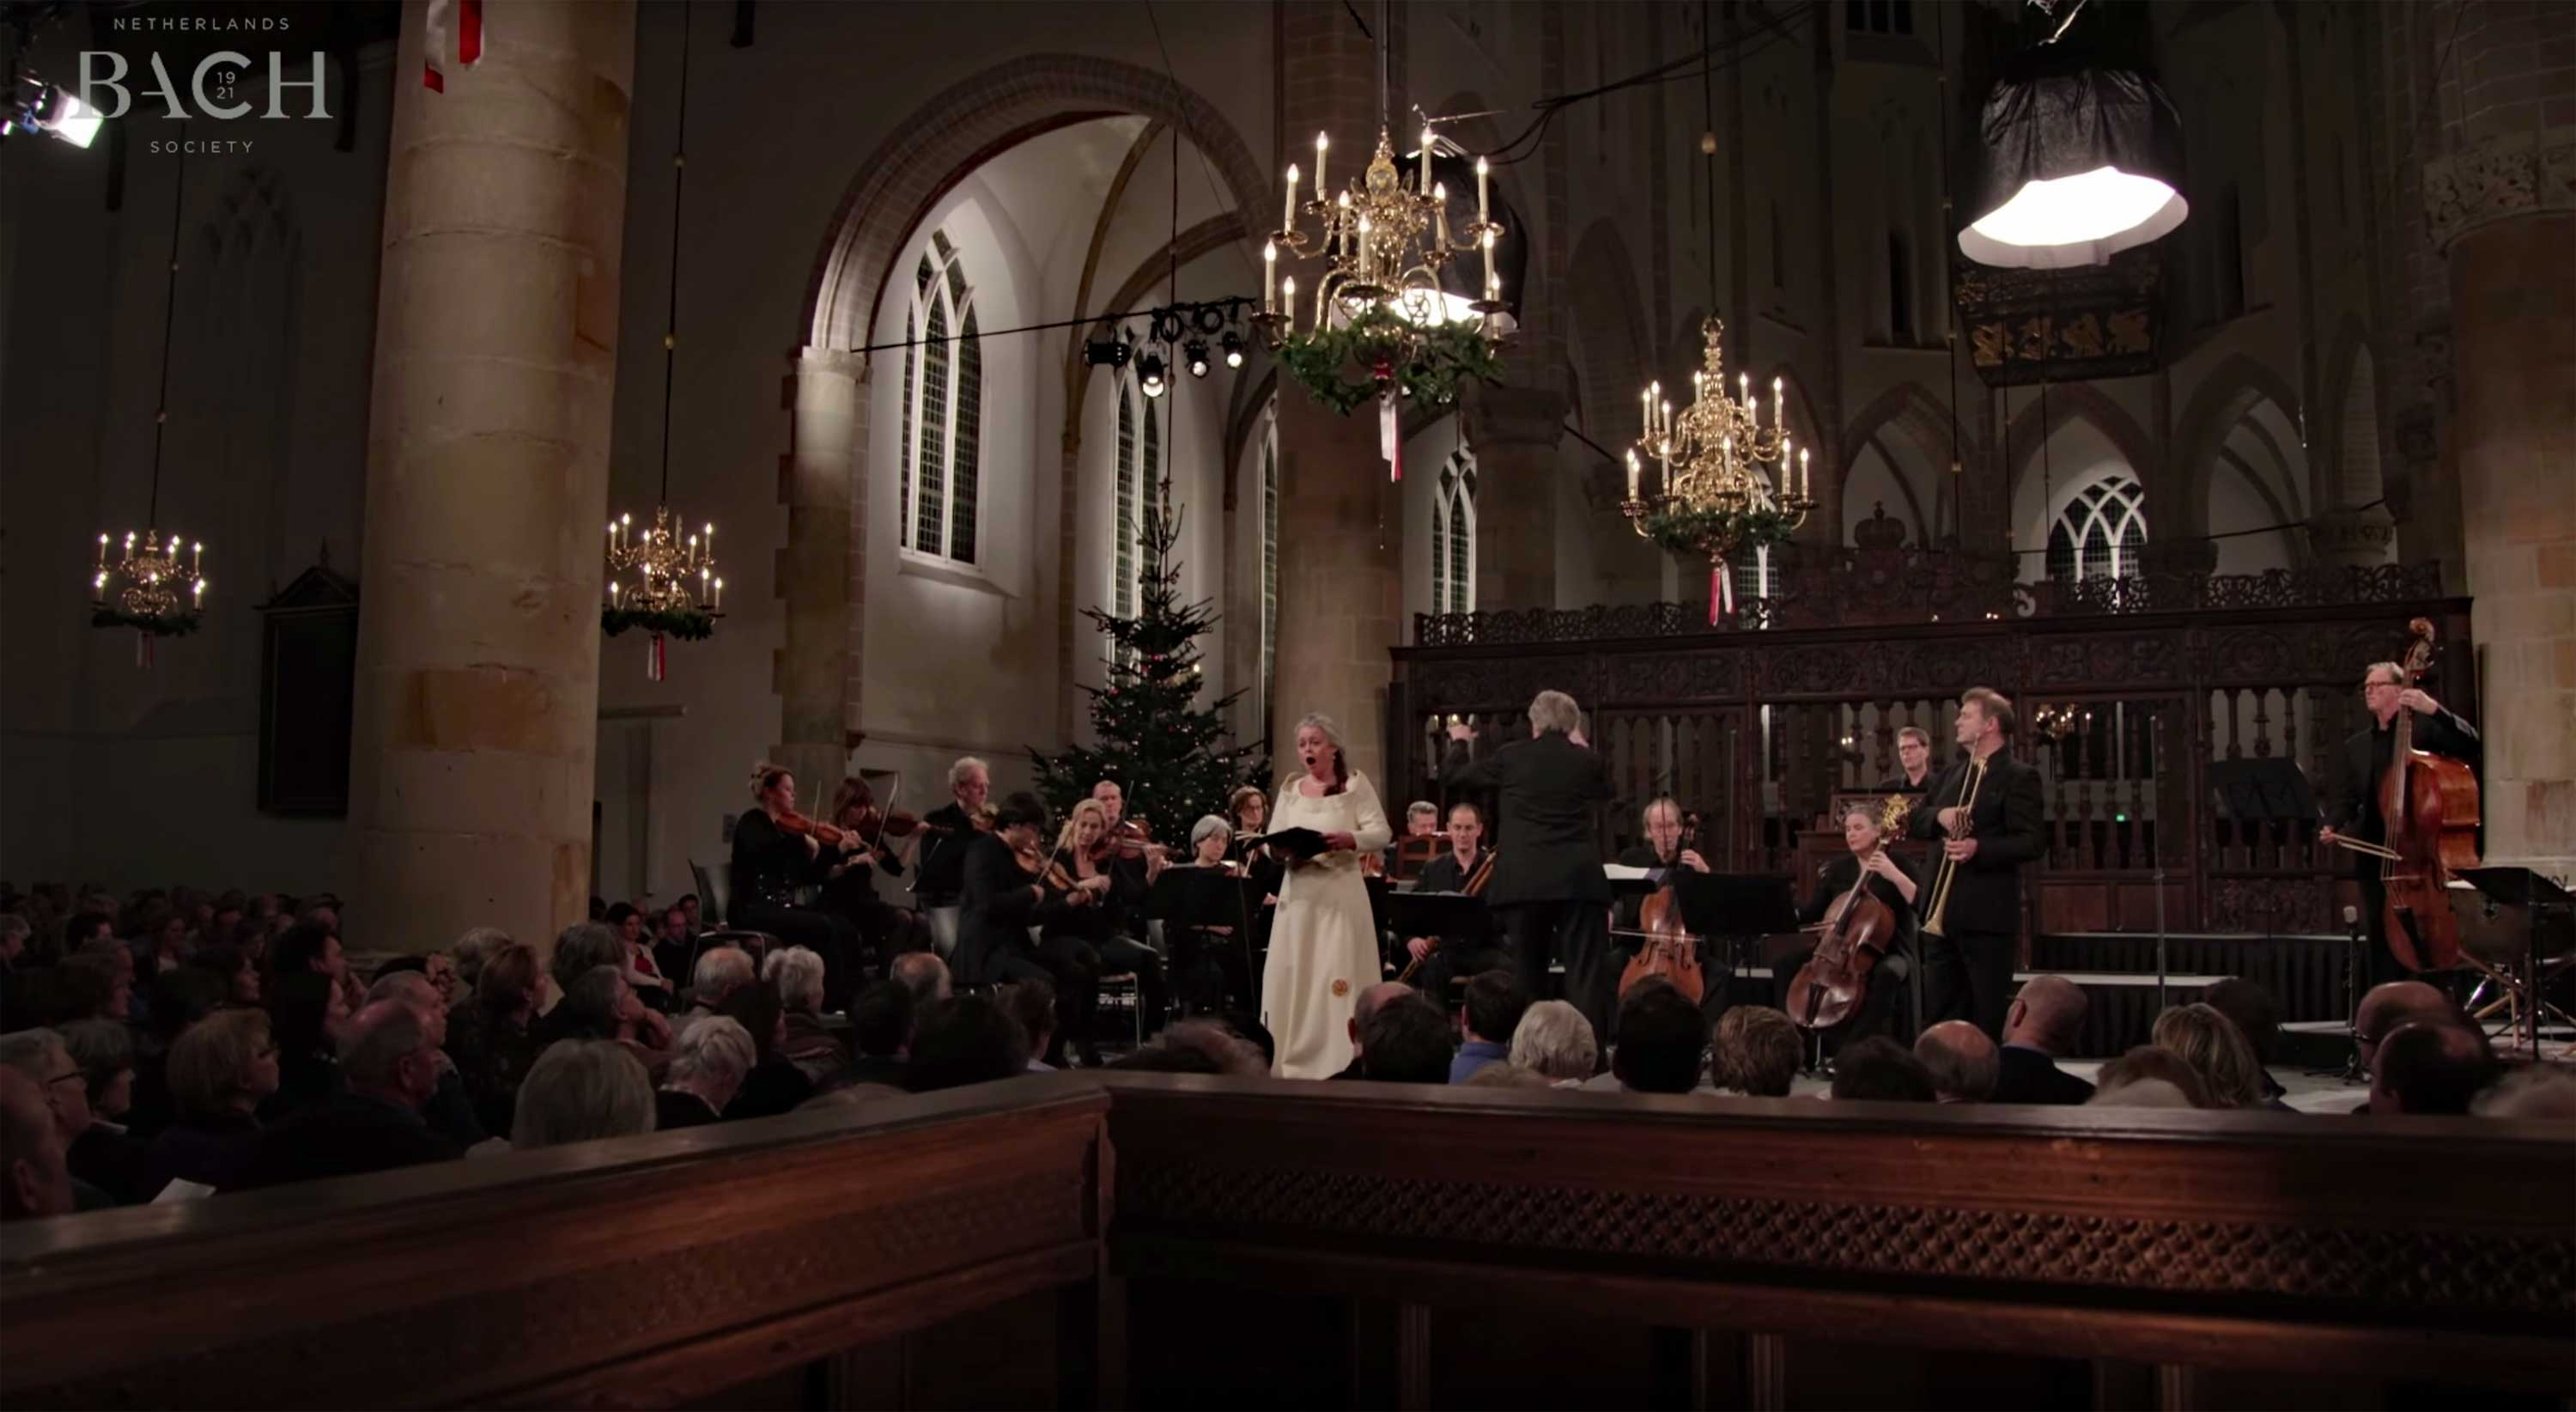 Maria Keohane, soprano, in a performance of Jauchzet Gott in allen Landen, BWV 51, with the Netherlands Bach Society in the Grote Kerk in Naarden.